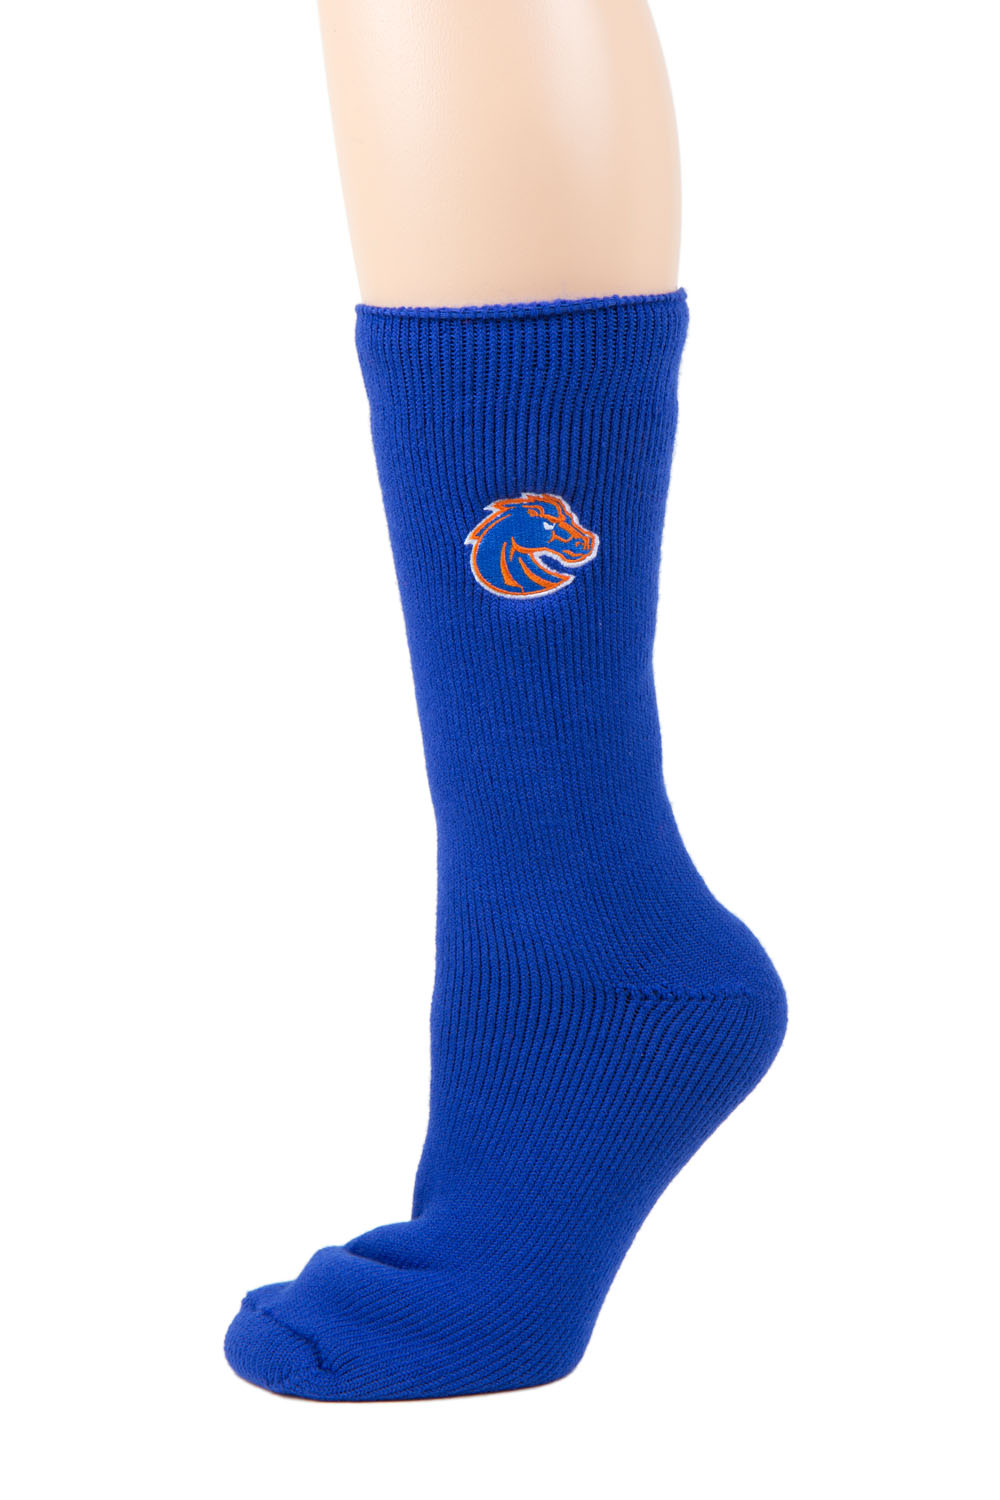 Boise State Broncos Blue Thermal Sock by Donegal Bay